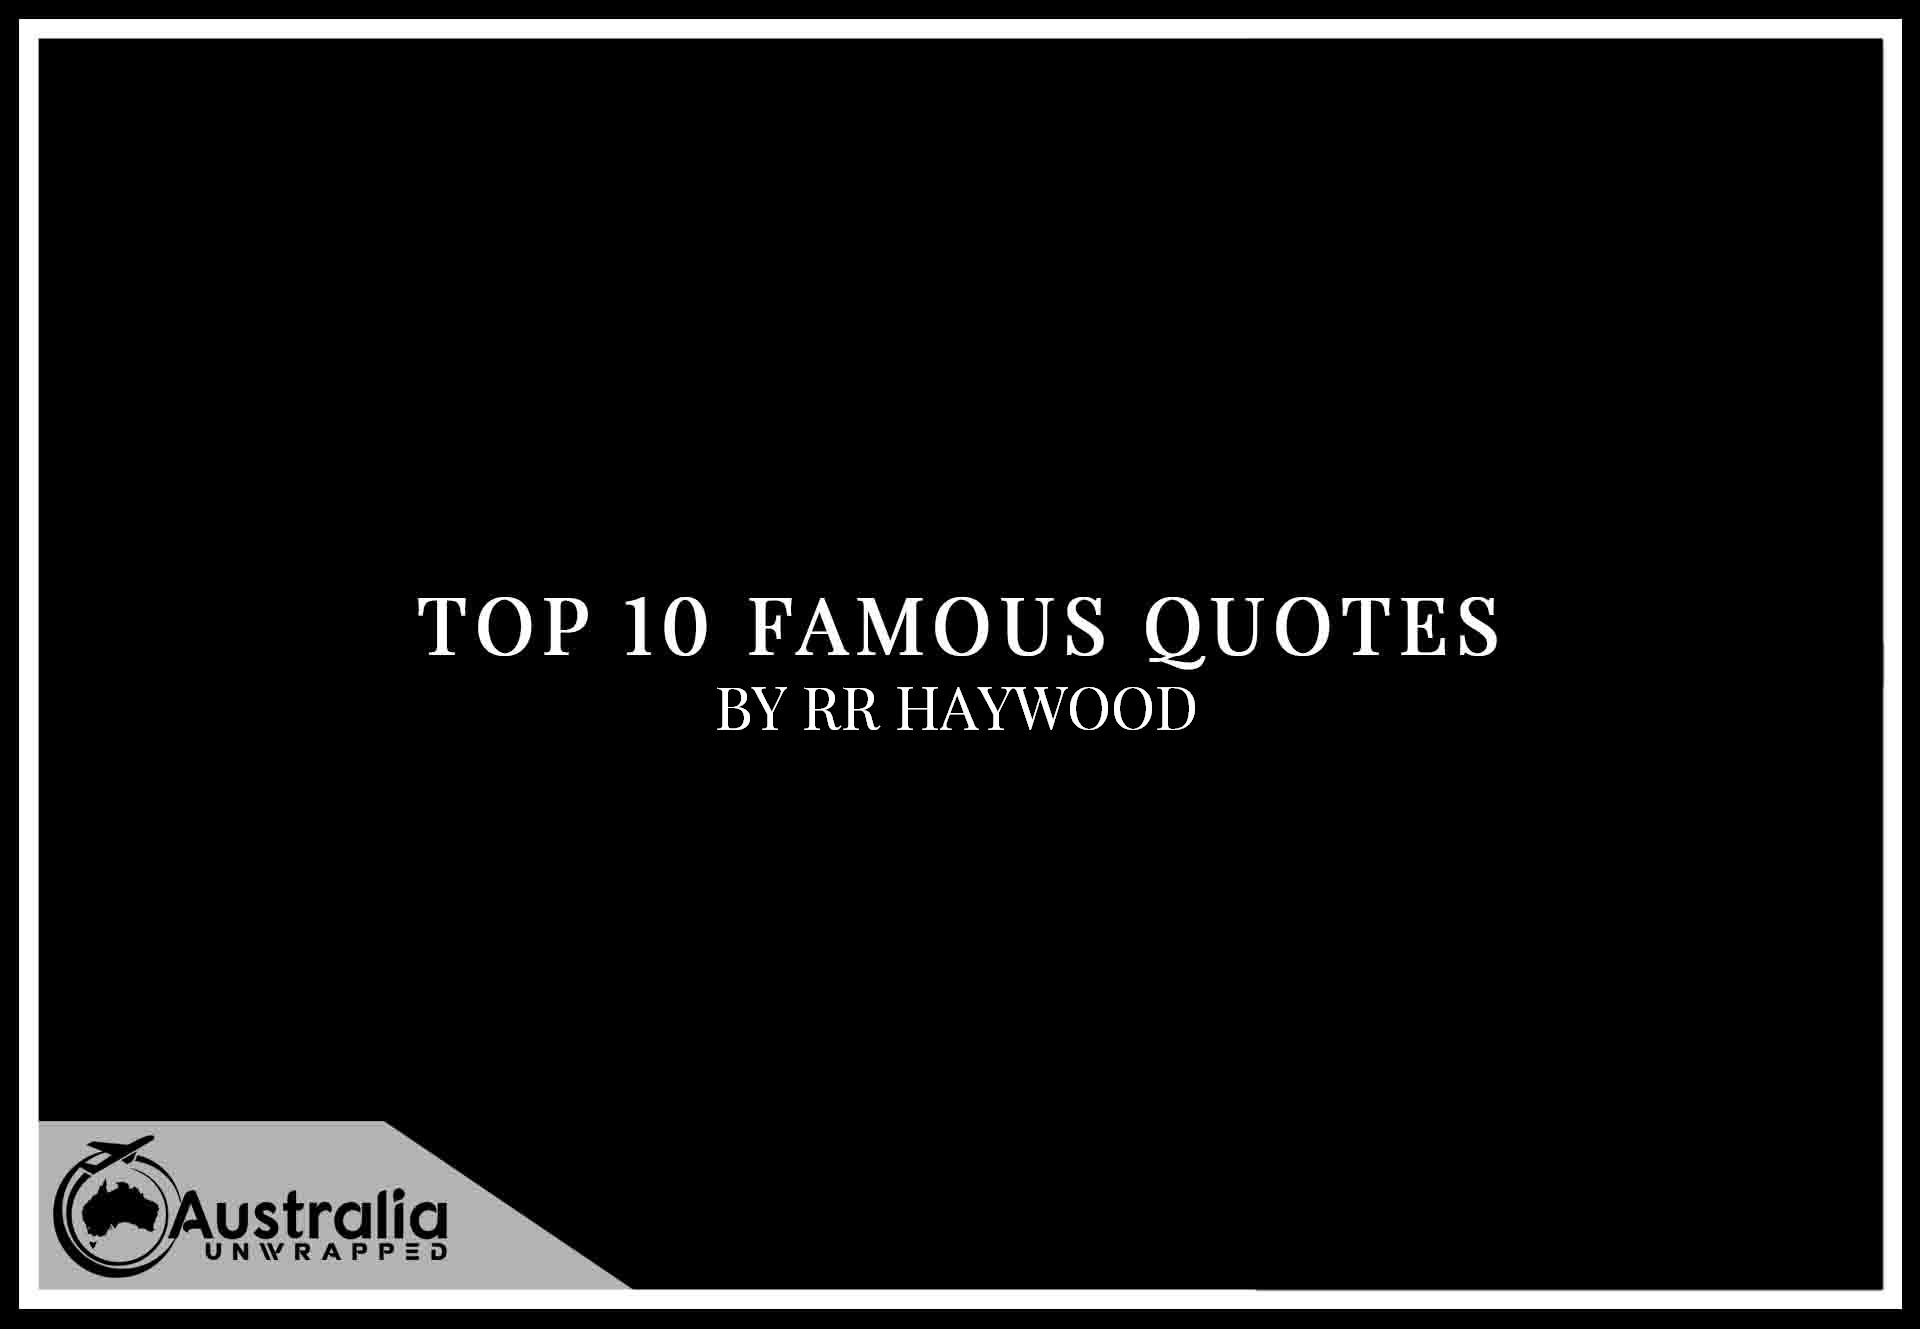 Top 10 Famous Quotes by Author R.R. Haywood